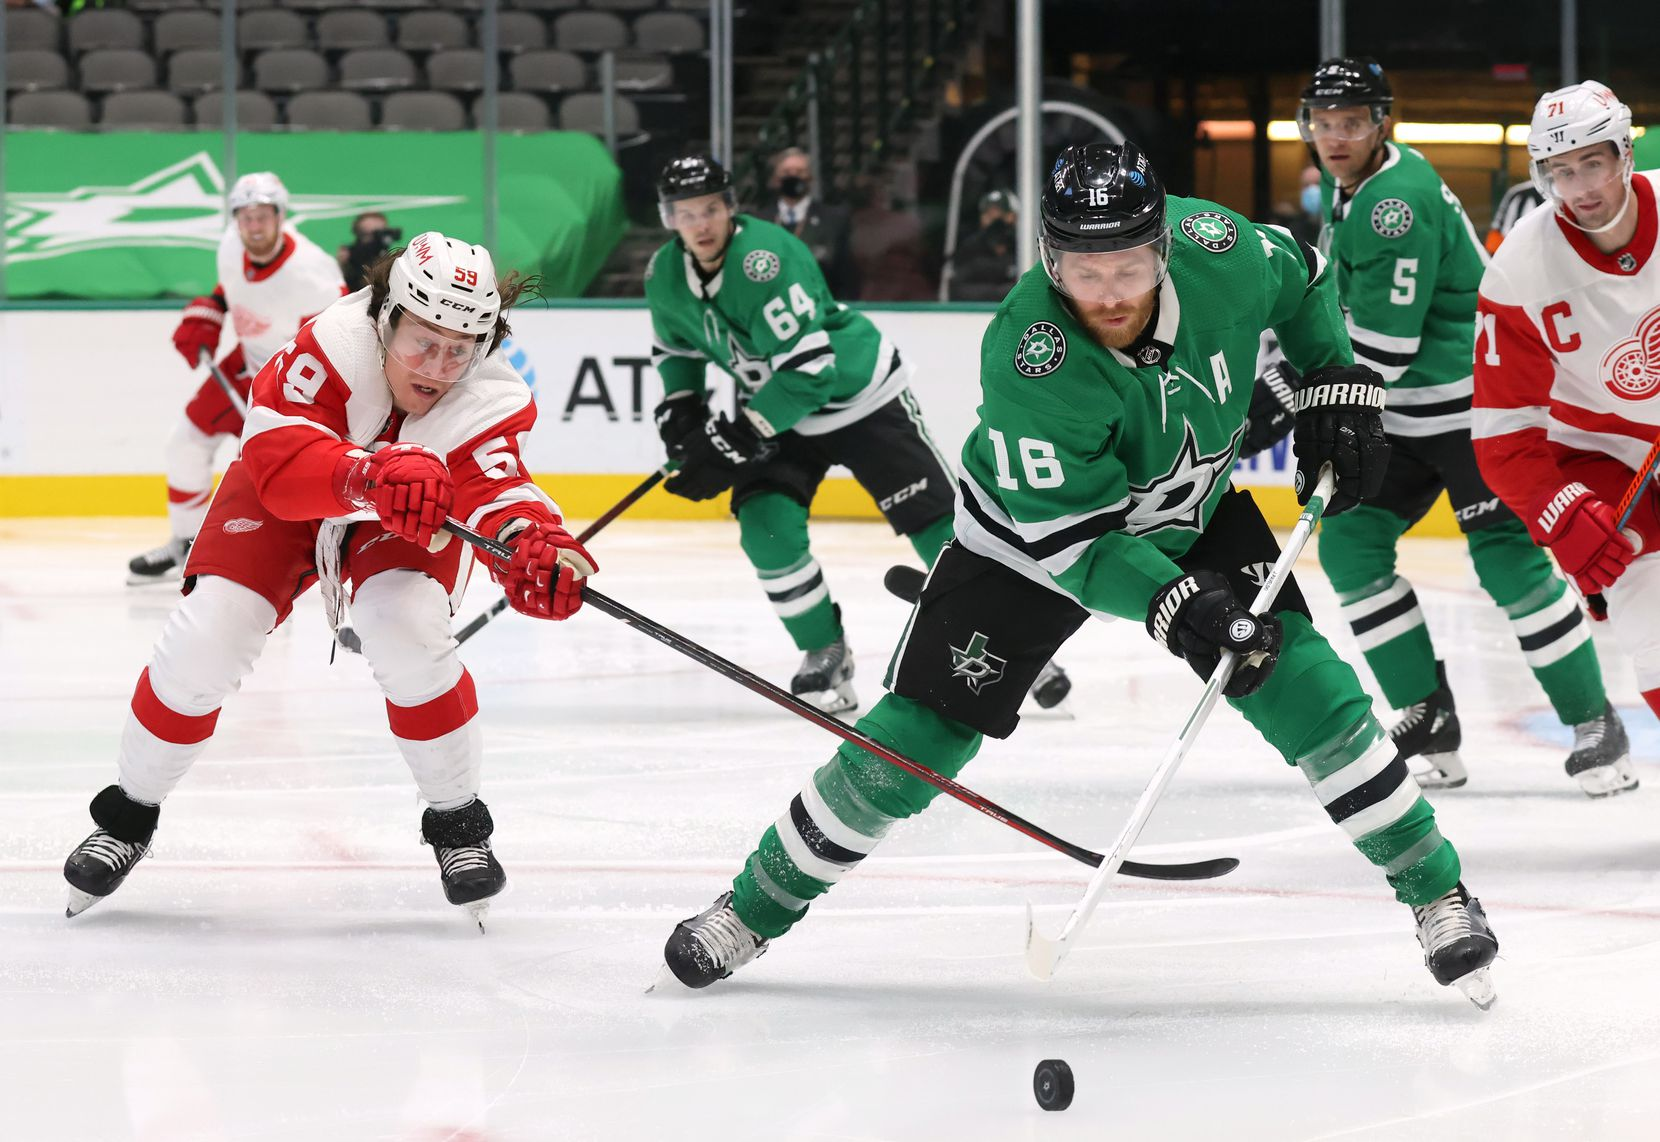 Dallas Stars center Joe Pavelski (16) secures the puck as Detroit Red Wings left wing Tyler Bertuzzi (59) reaches during the second period of play at American Airlines Center on Tuesday, January 26, 2021in Dallas. (Vernon Bryant/The Dallas Morning News)